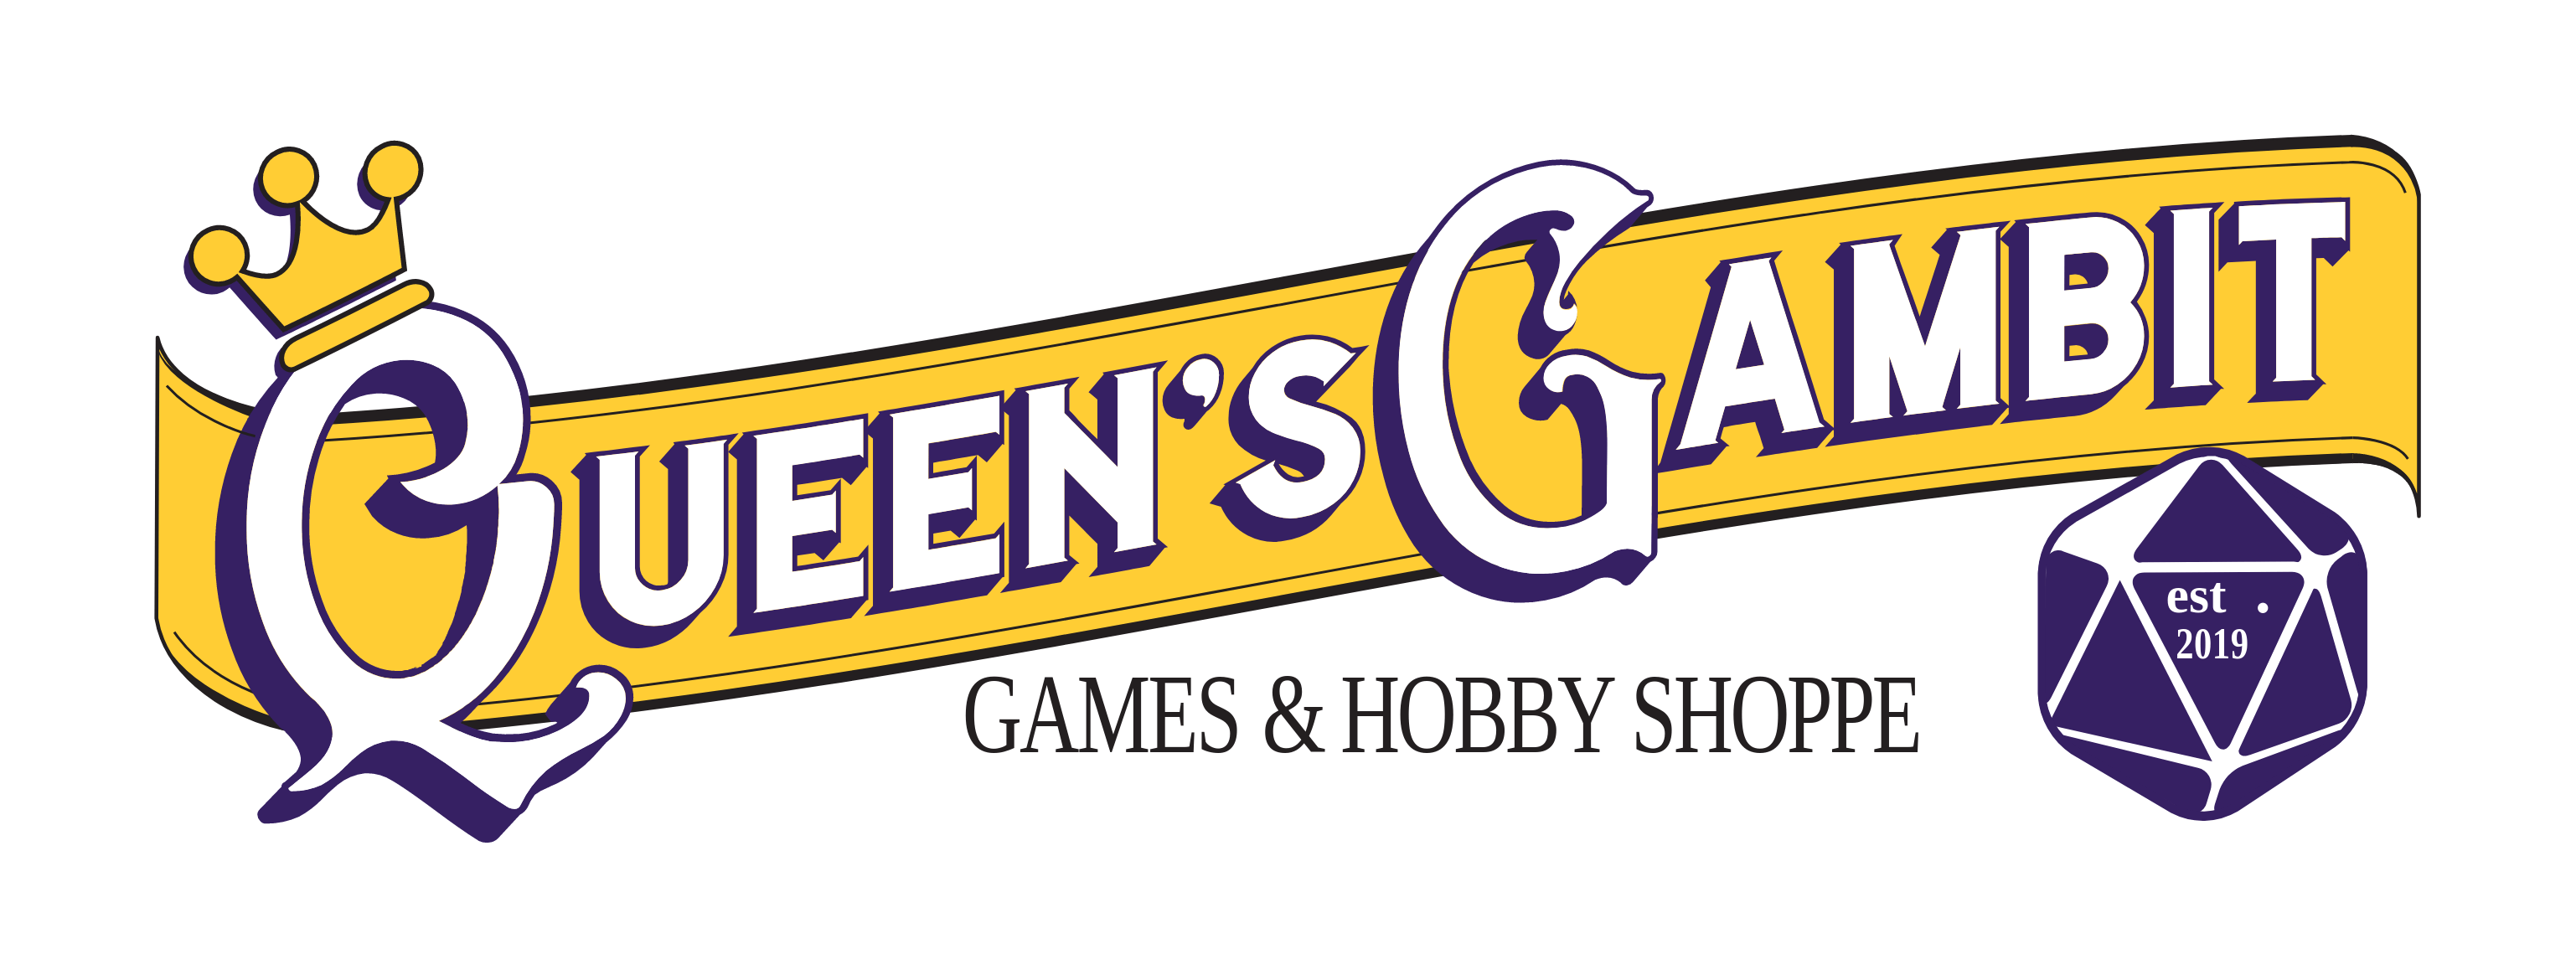 Queen's Gambit • Games and Hobbies